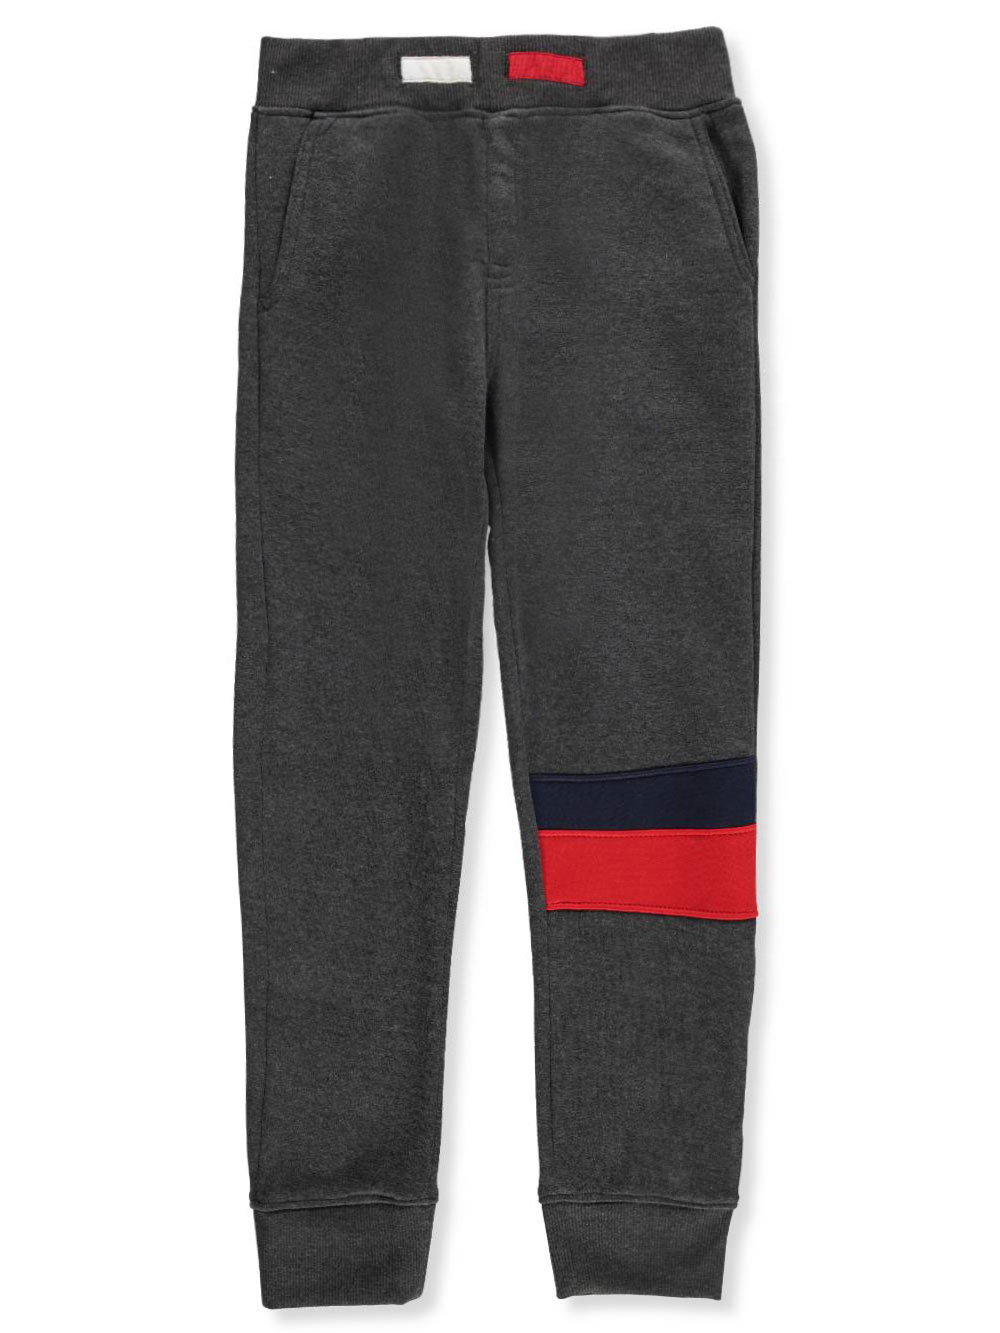 Beverly Hills Polo Club Boys' Joggers